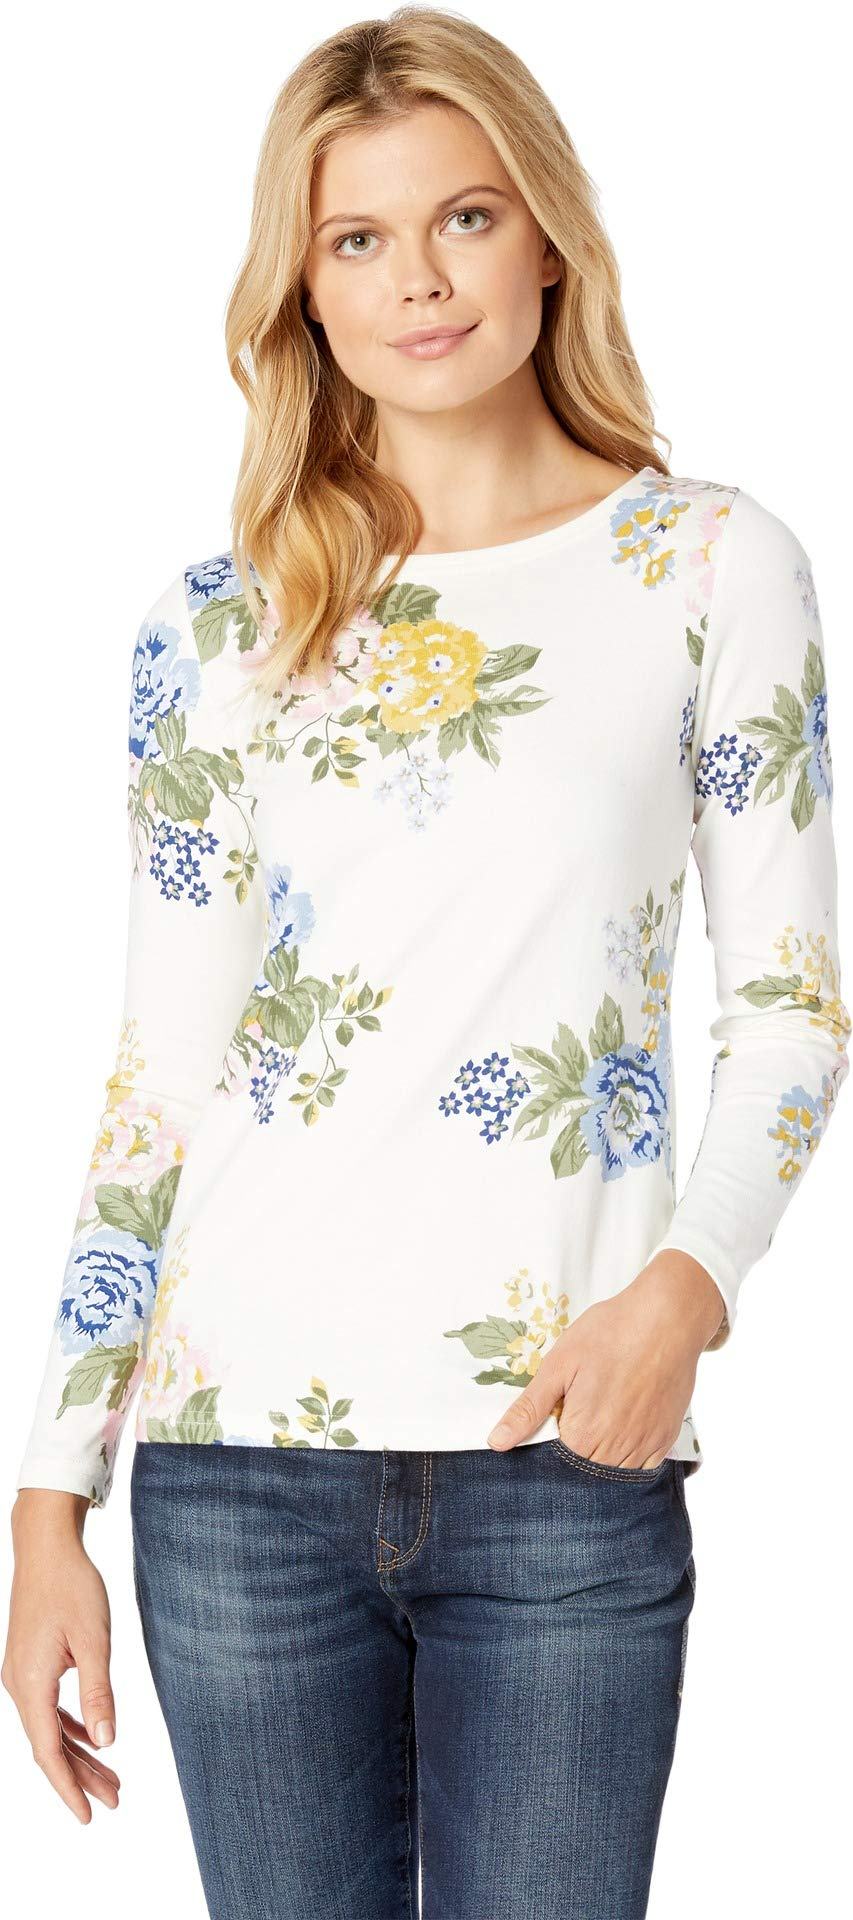 Joules Women's Harbour Printed Jersey Top Cream Maisy Floral 2